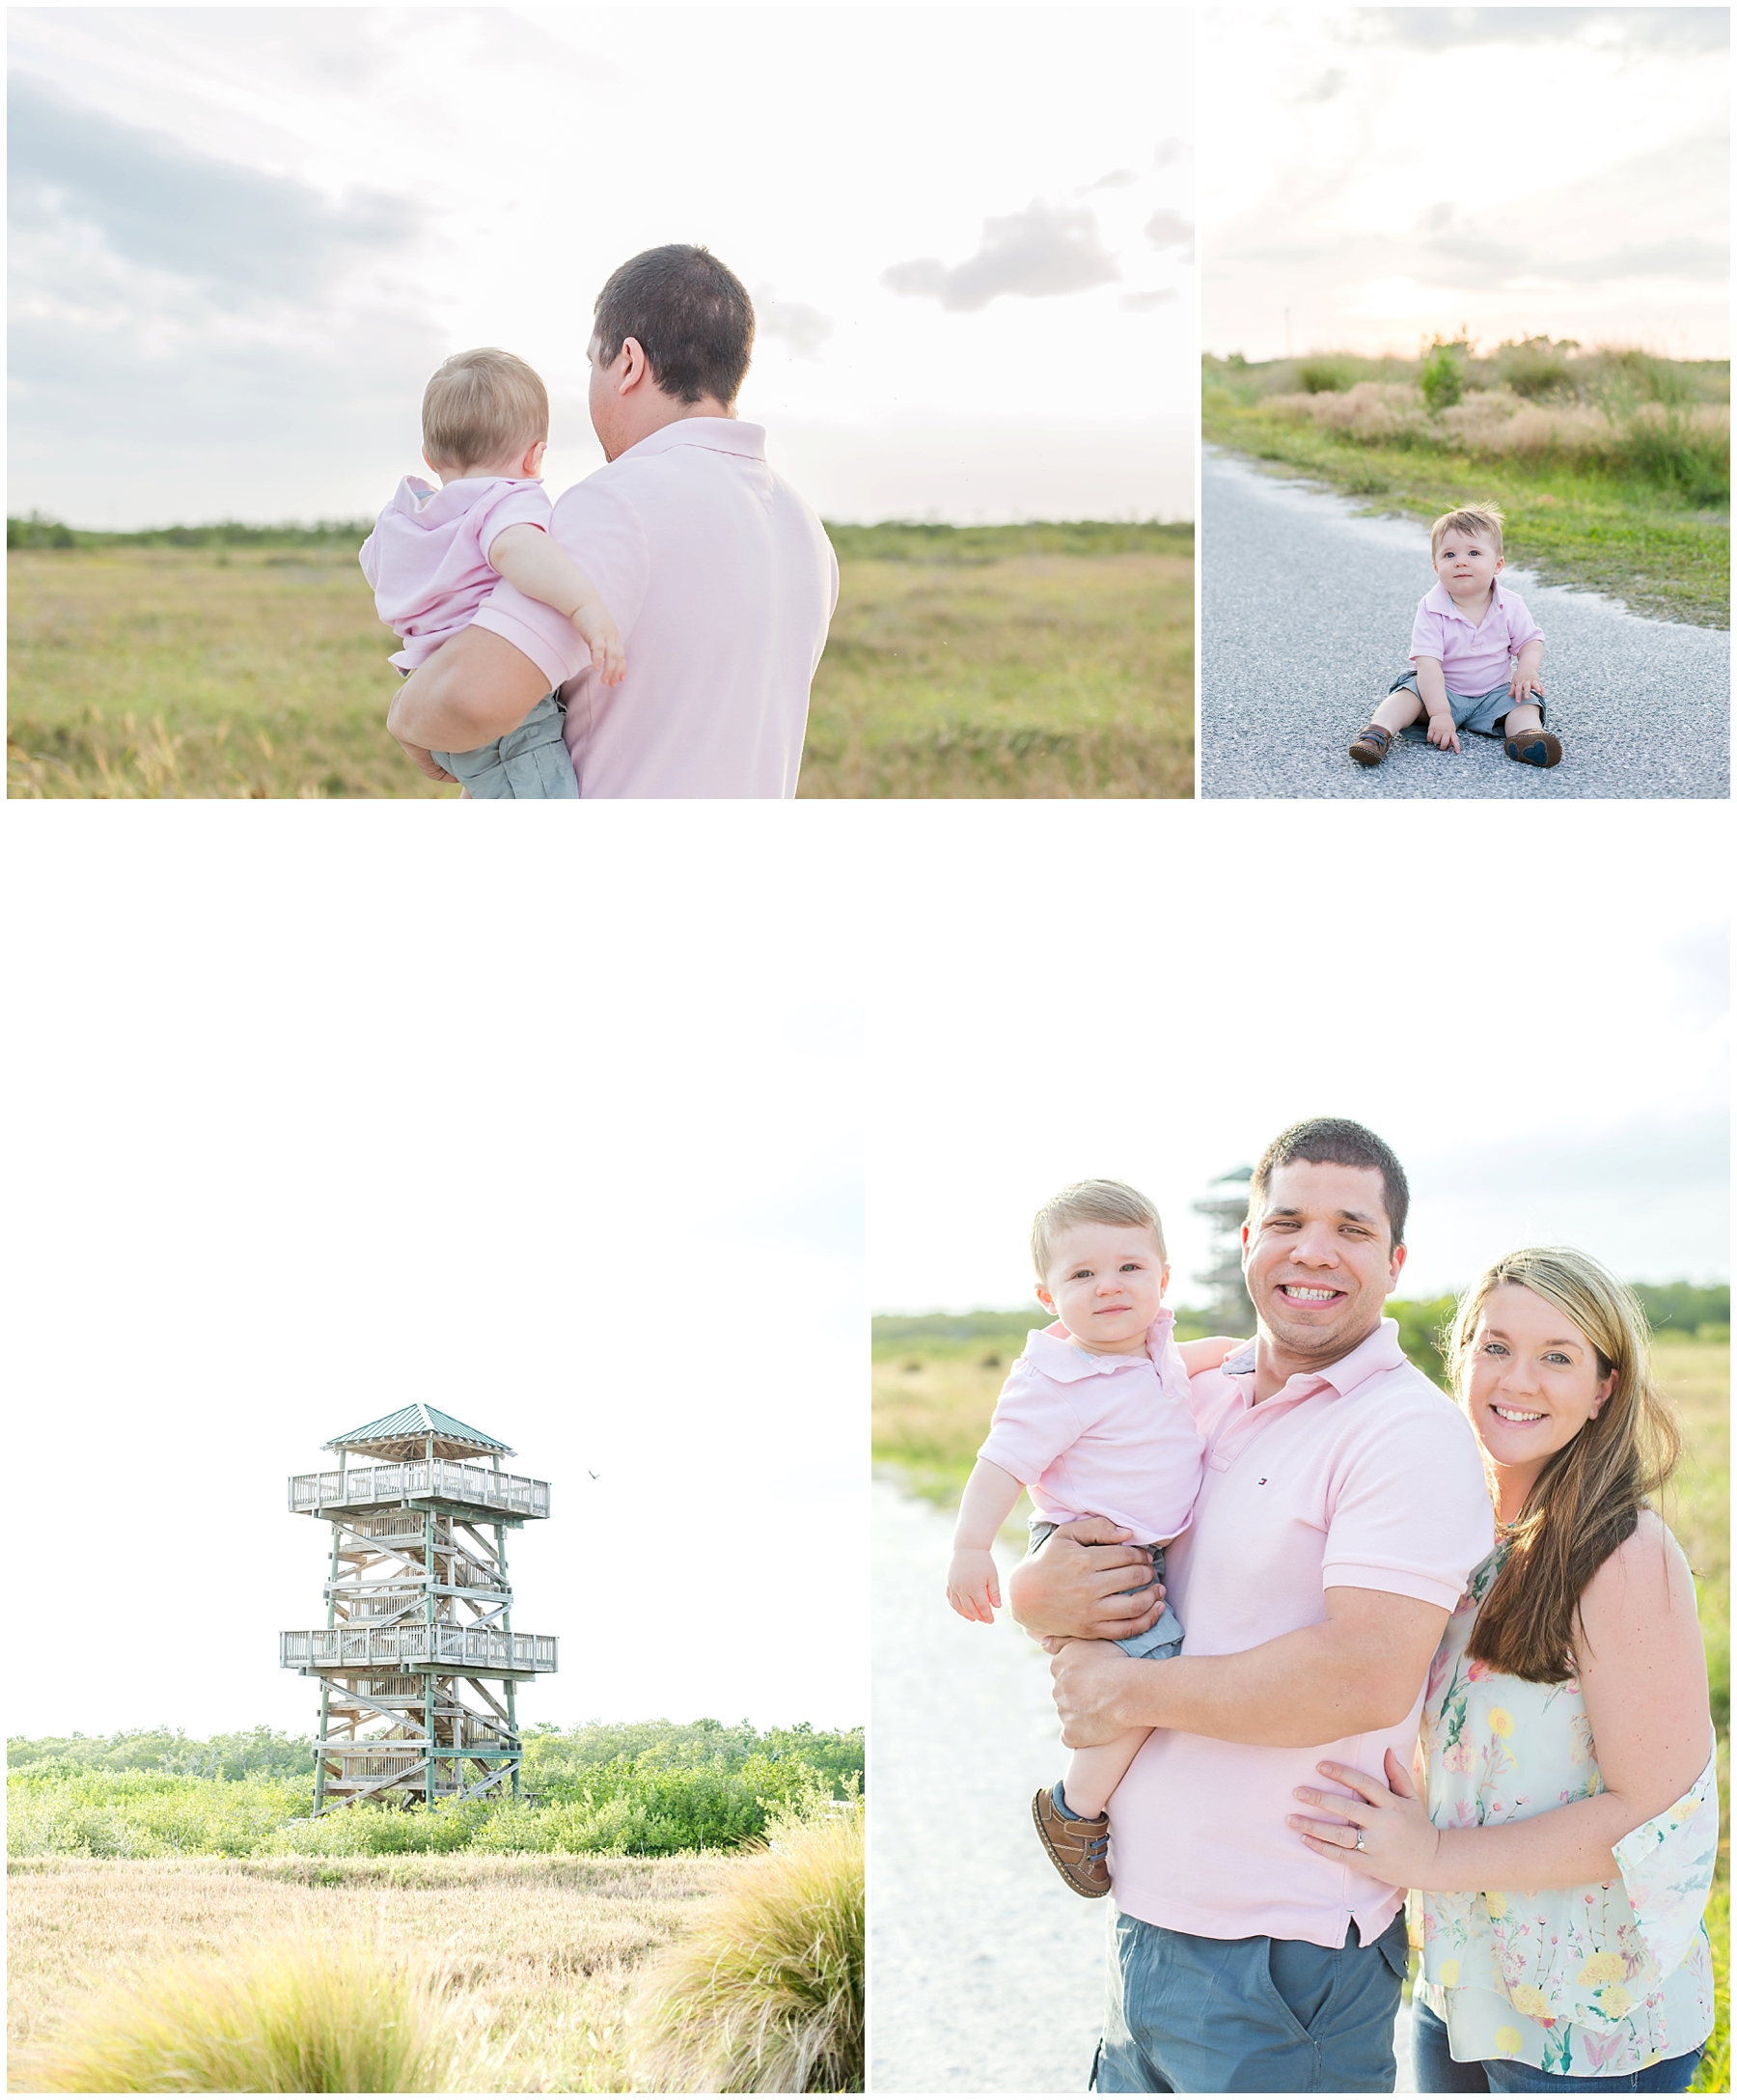 Torres family session part two! This session is coming to the blog next week, and you are not going to want to miss it!! Robinson Preserve was so gorgeous, and we got the best pictures there!